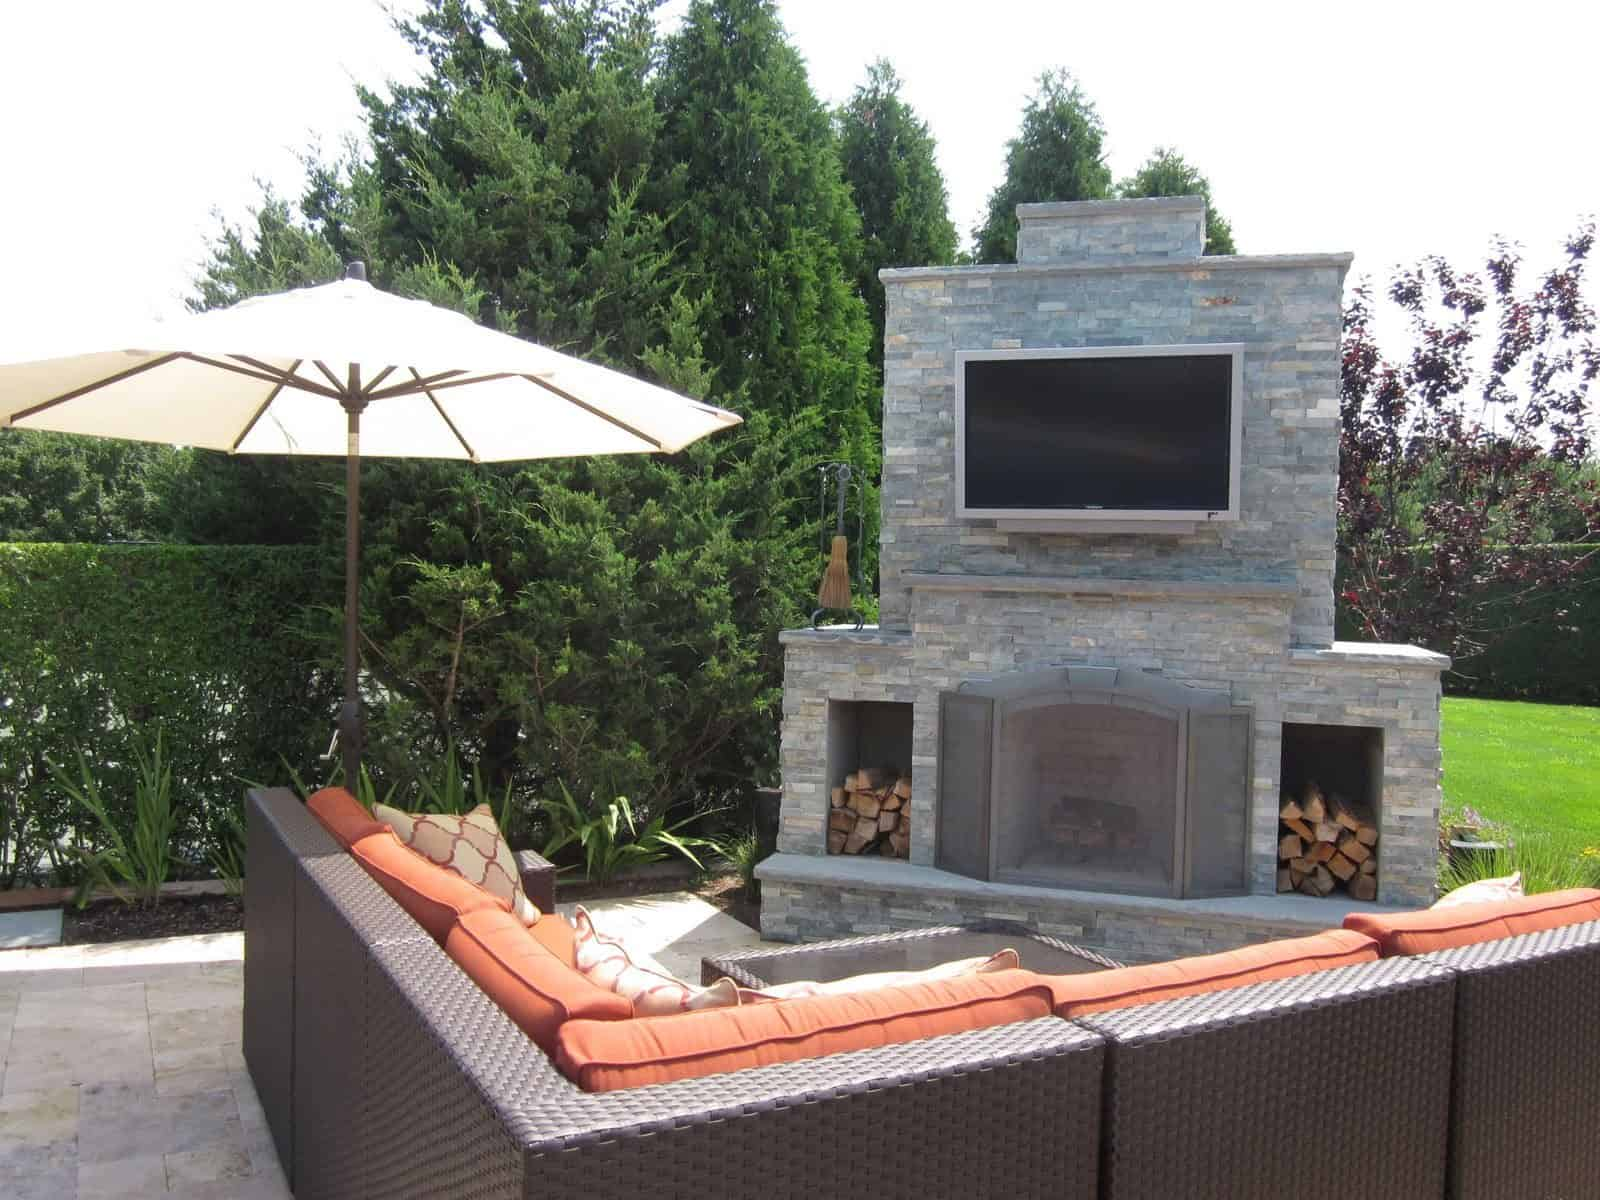 Outdoor Fireplace - East West Stone - Bayside Waters - with Bluestone Accents - Outdoor Flatscreen TV Mounted on Smoke Chamber